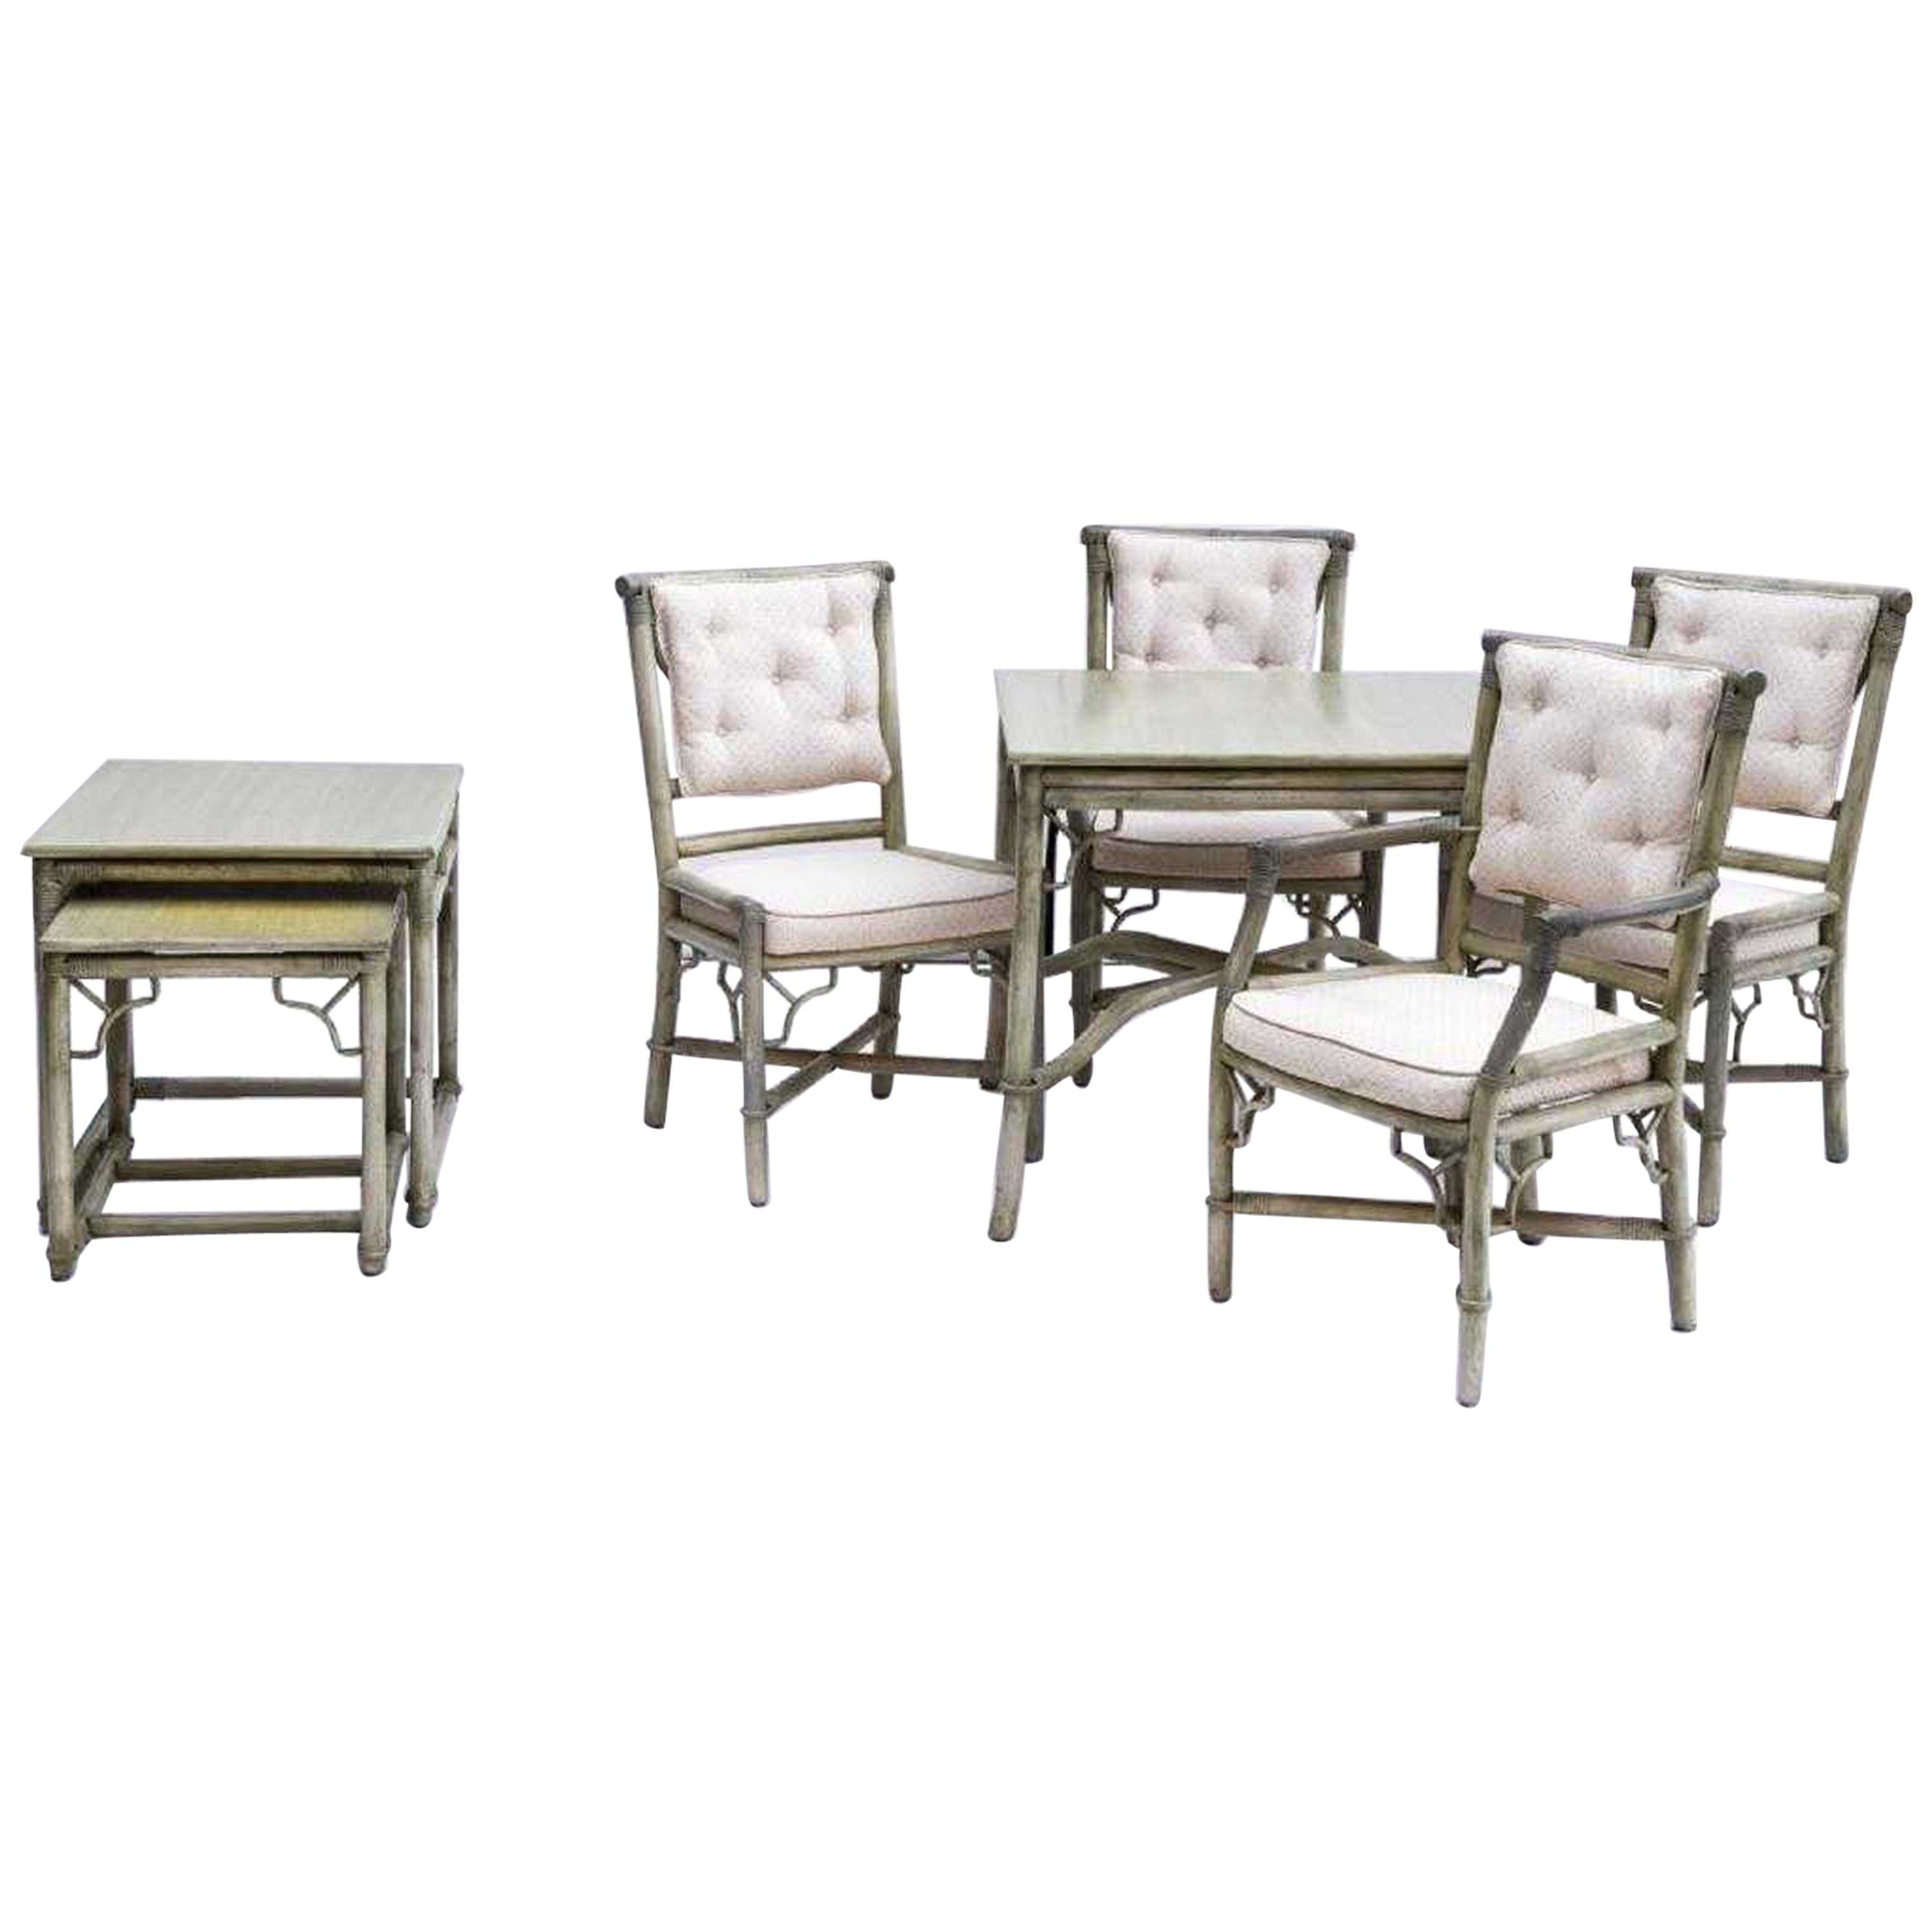 Faux Bamboo Rattan Table and Chairs and Side Tables